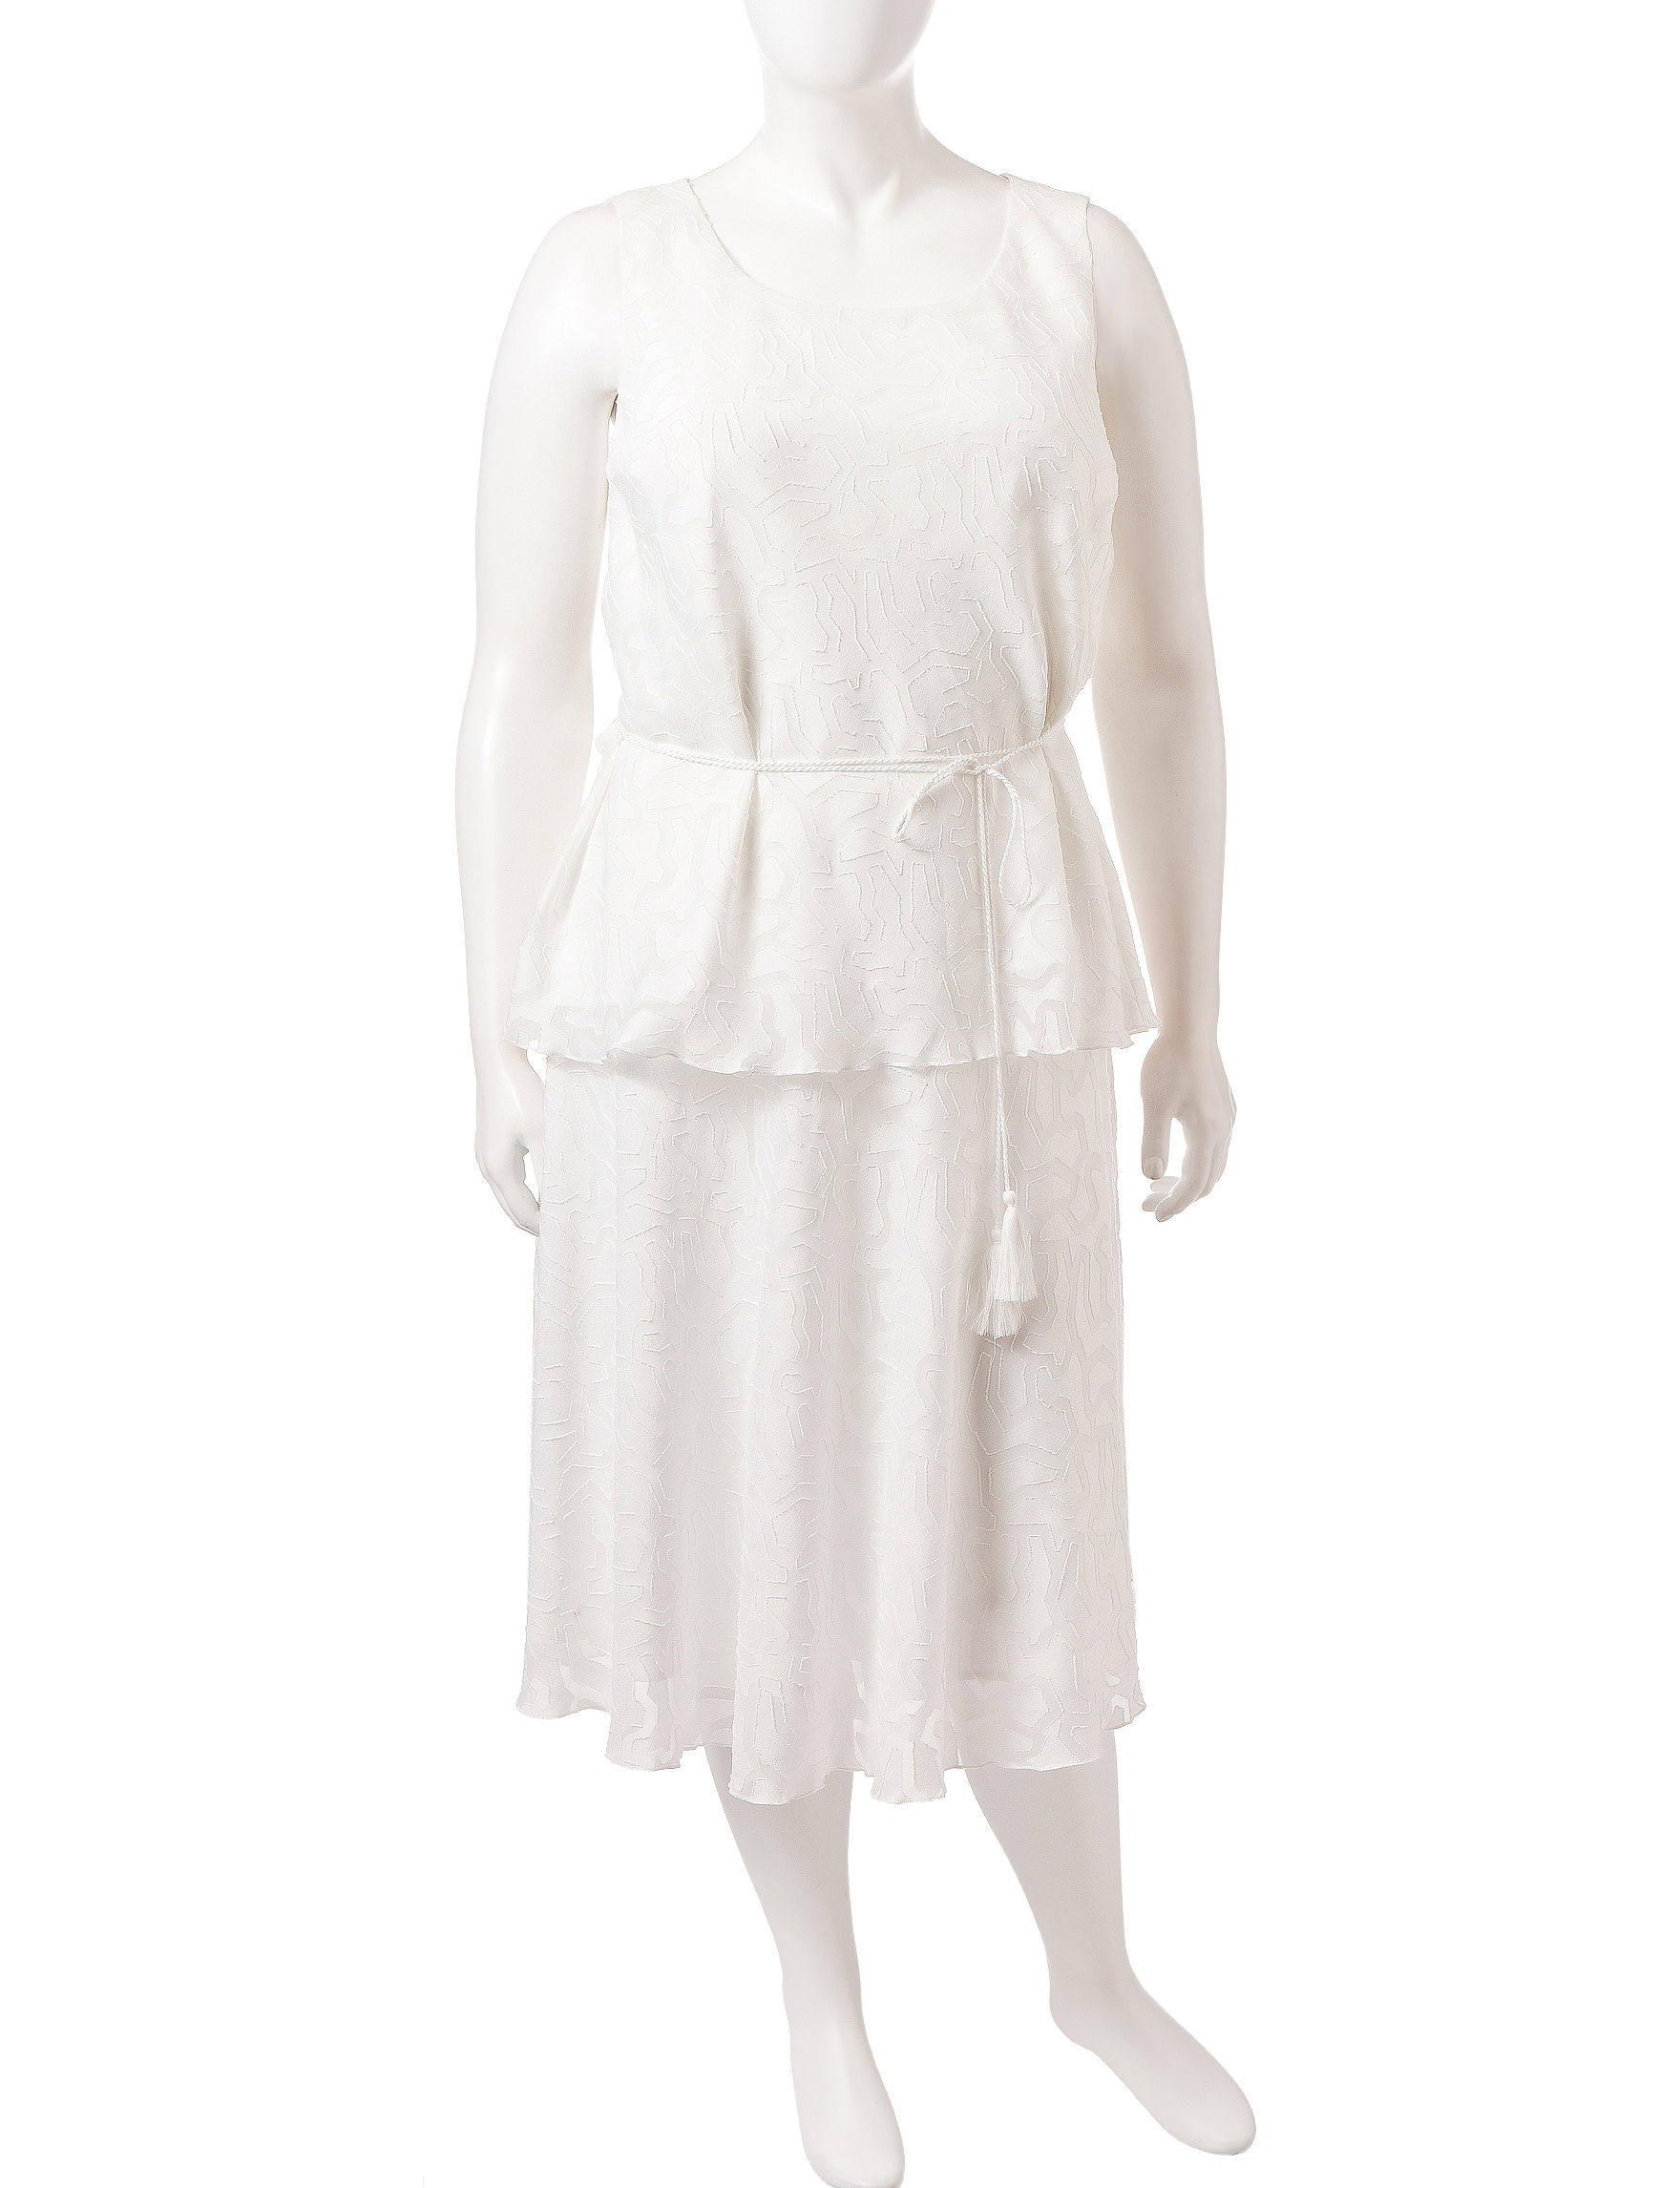 Glamour Cream Everyday & Casual Shift Dresses